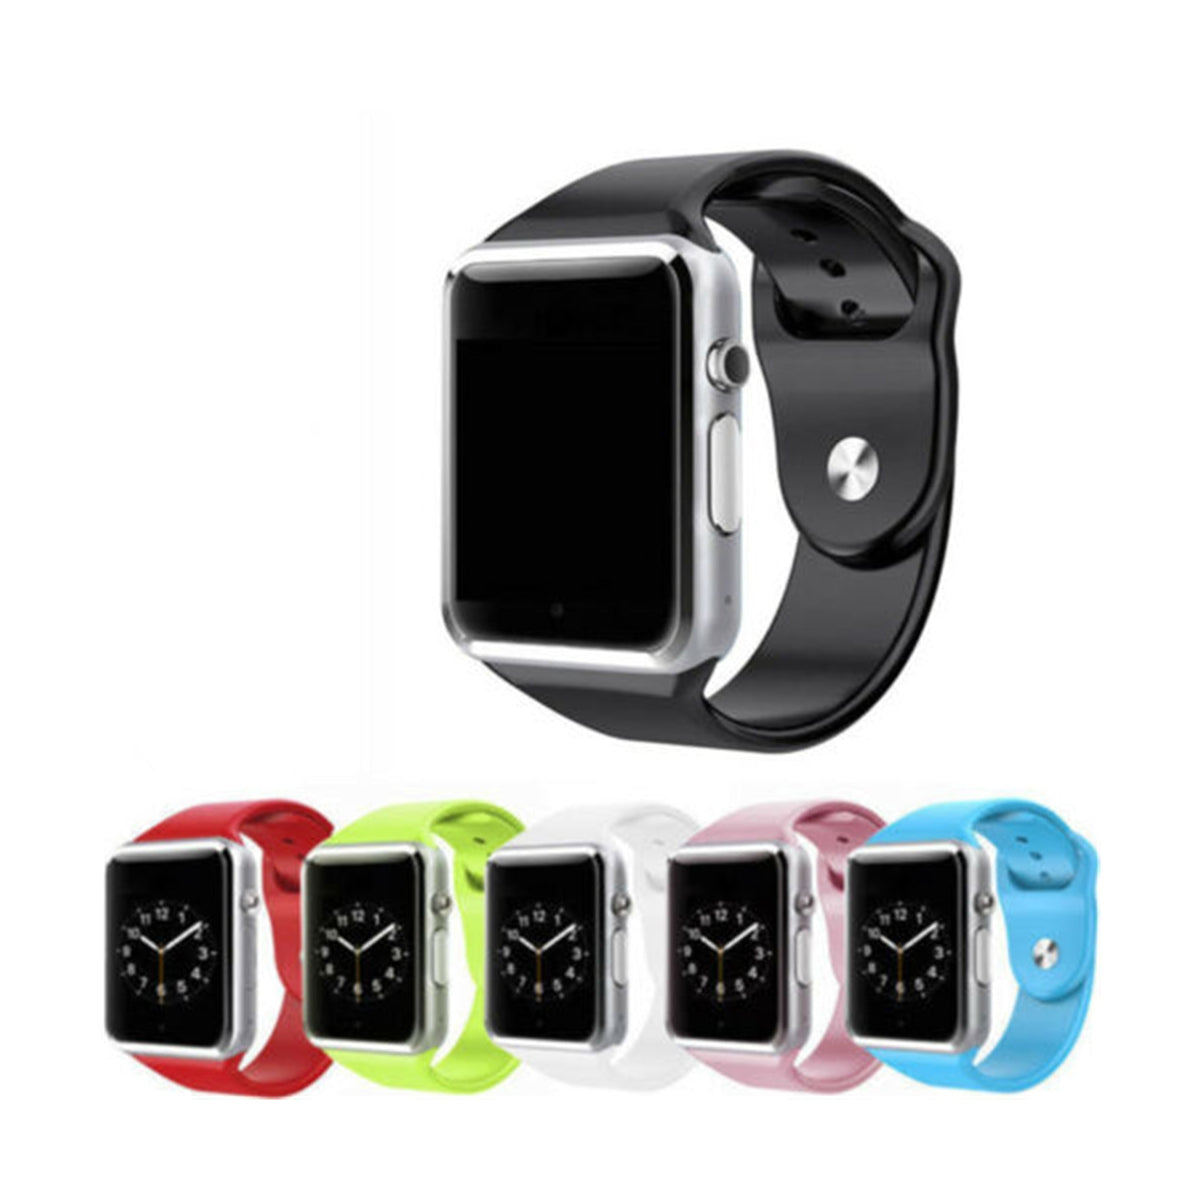 Bluetooth Smart Watch with Camera, Pedometer, Sleep Monitor & Sedentary Reminder